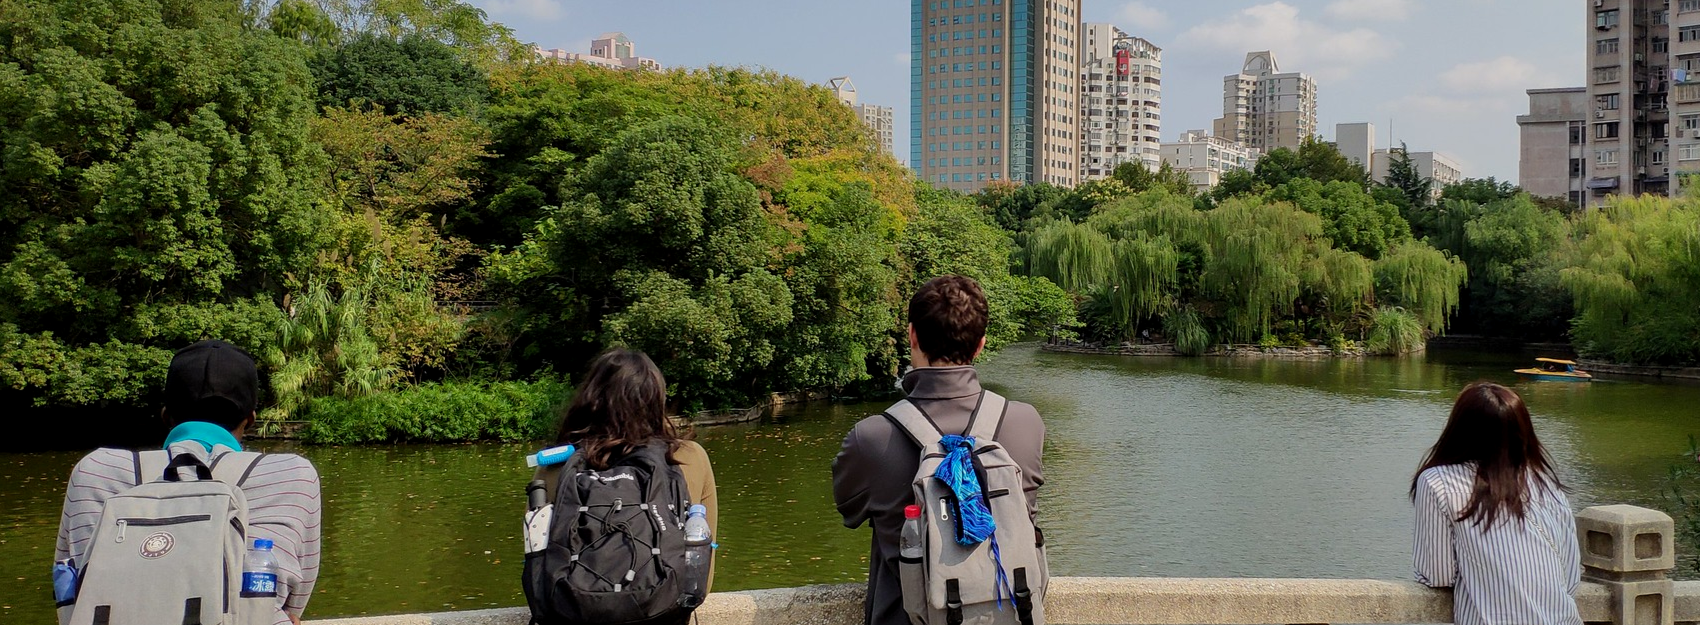 4 students with backpacks overlooking water at park in shanghai